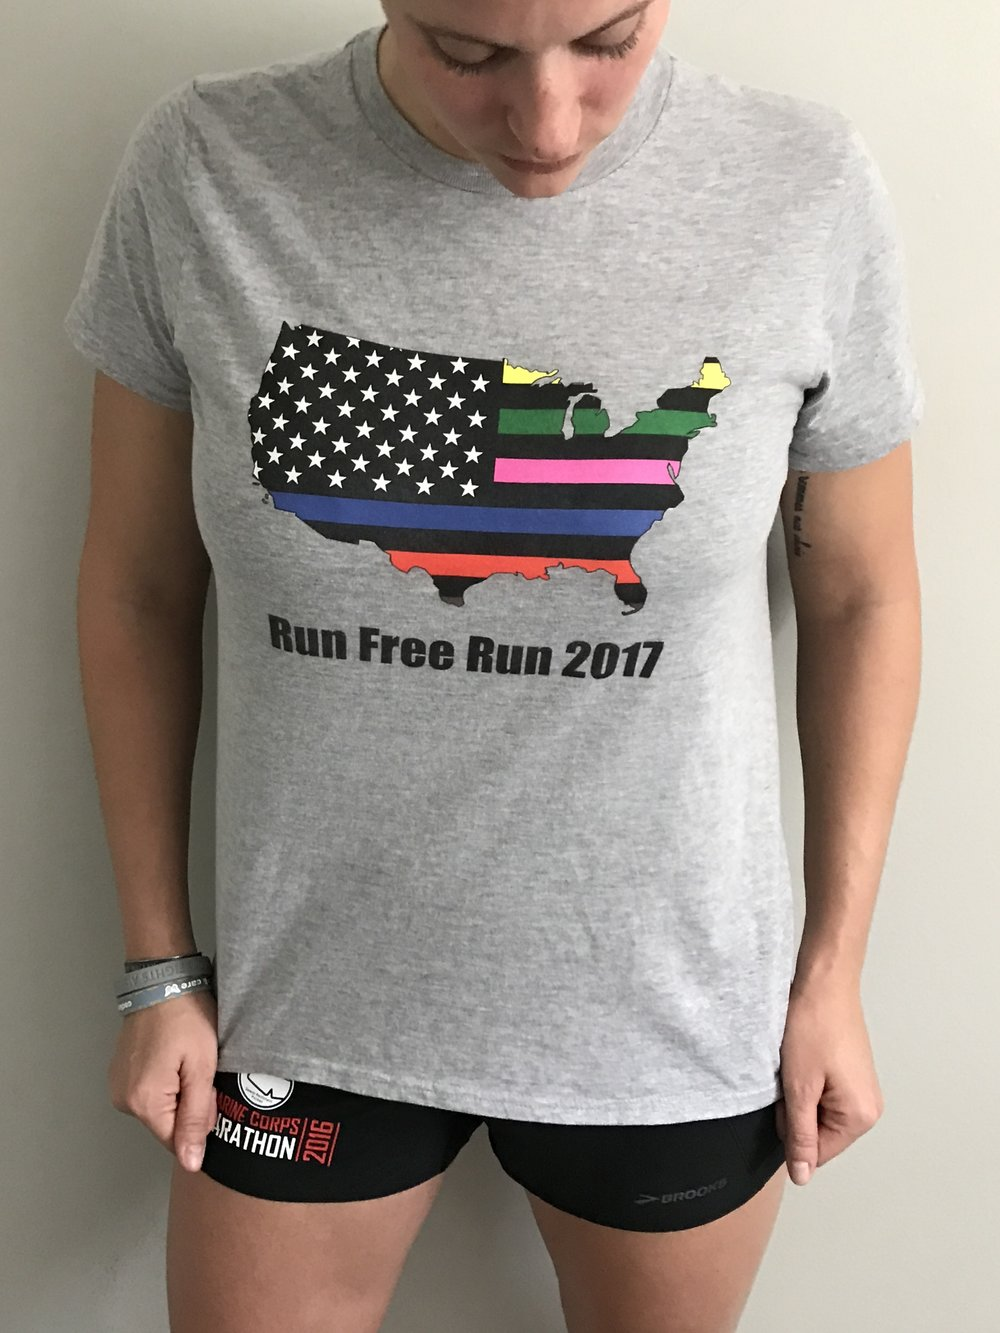 Run Free USA Tee (Anvil) $25